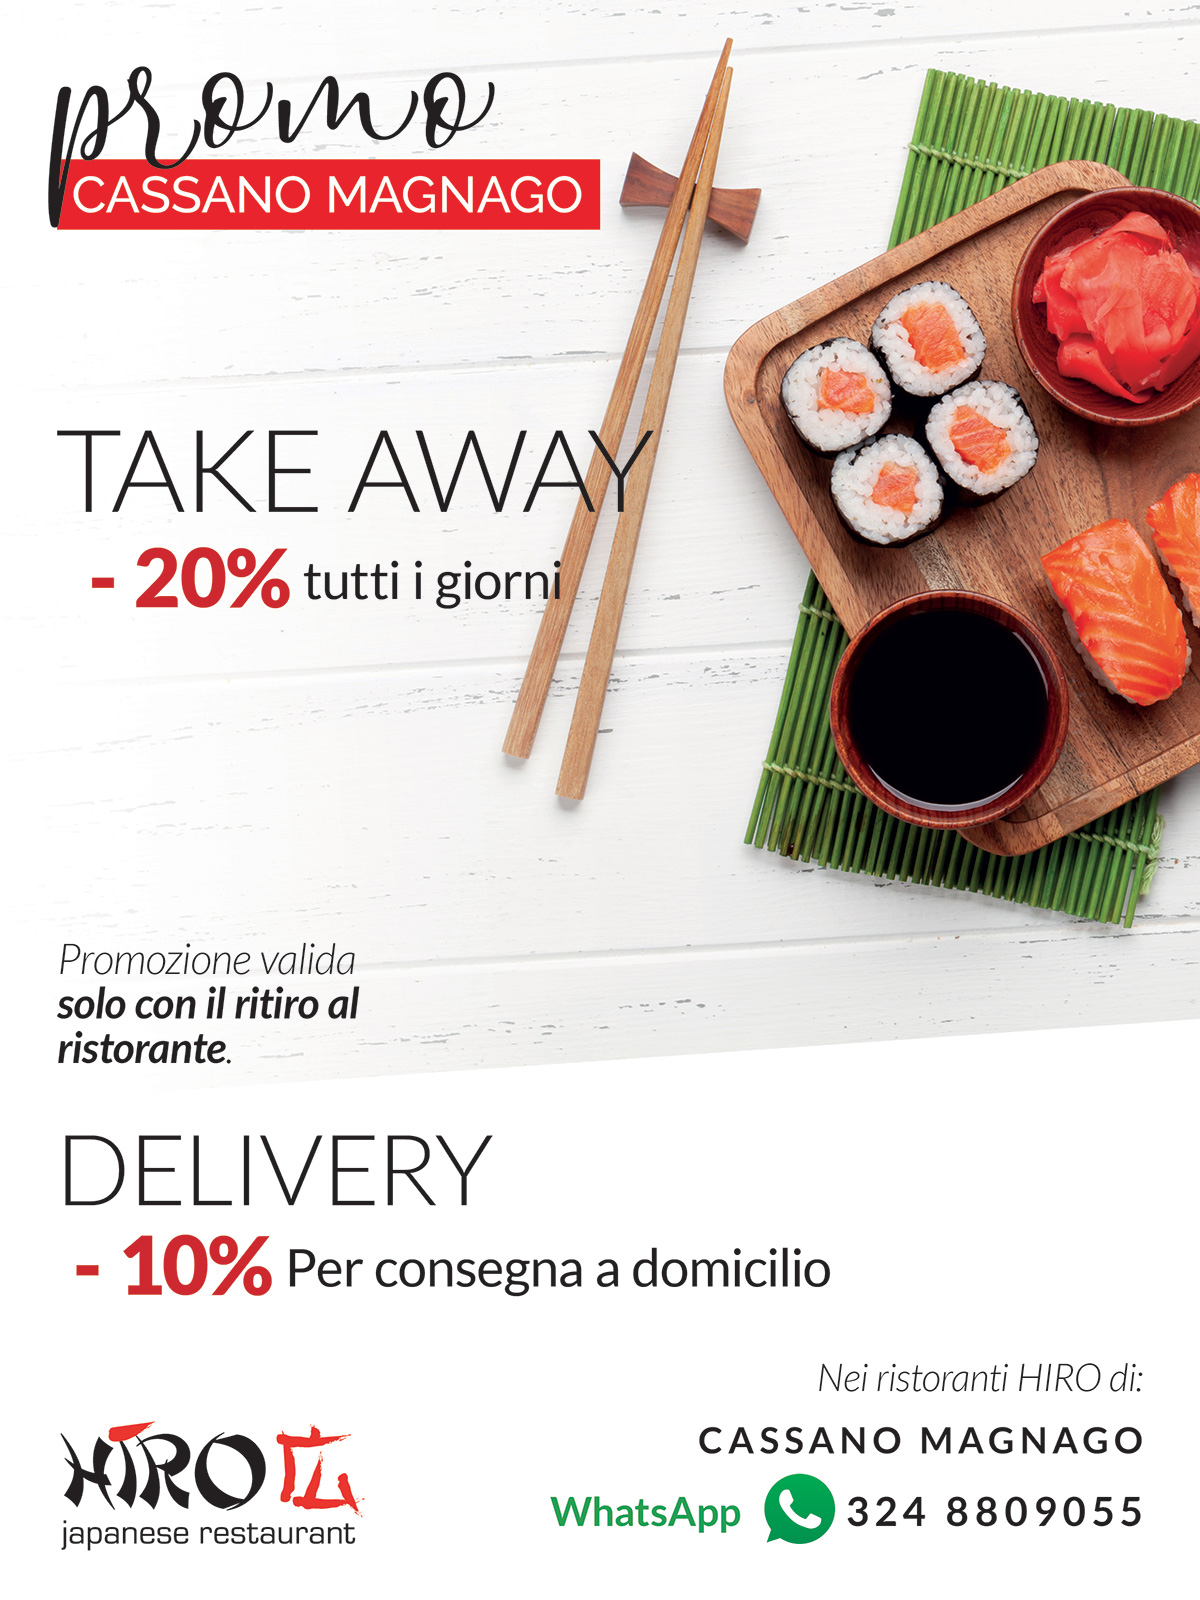 Post_Promo_Take_Away_HIRO_GENNAIO_Cassano